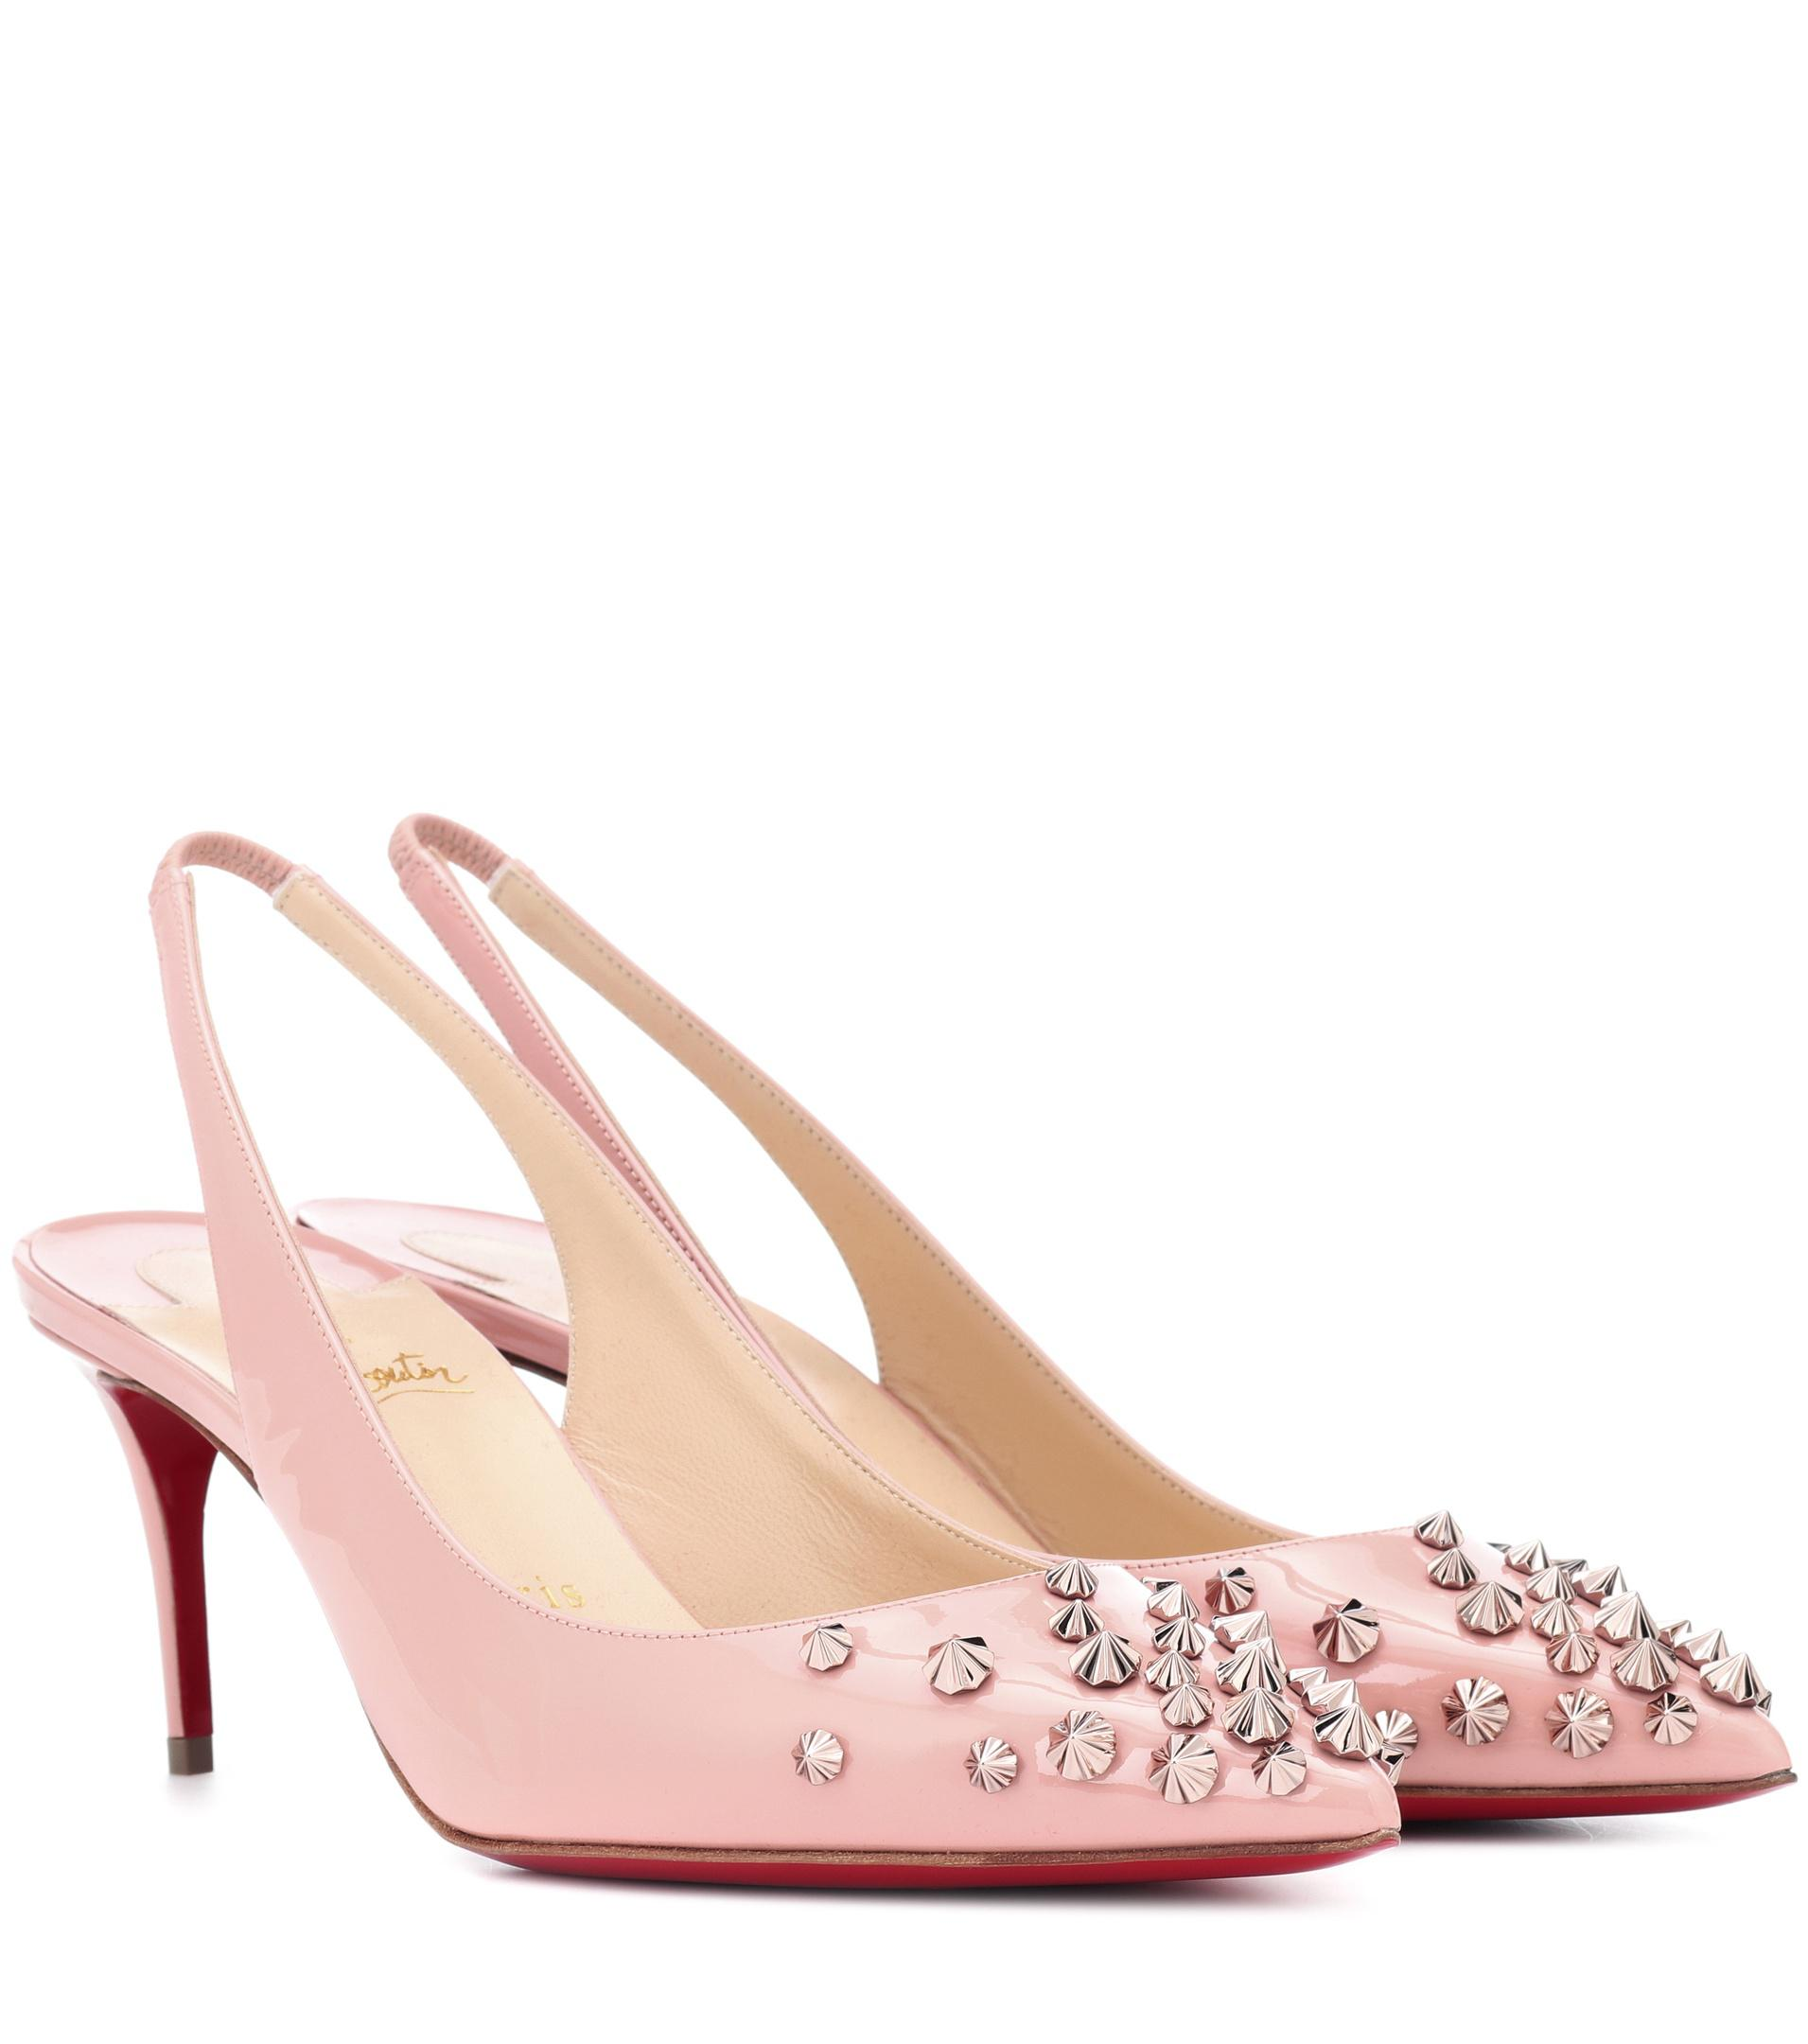 d35588c2c7dd Christian Louboutin Drama Sling 70 Patent Leather Pumps in Pink - Lyst